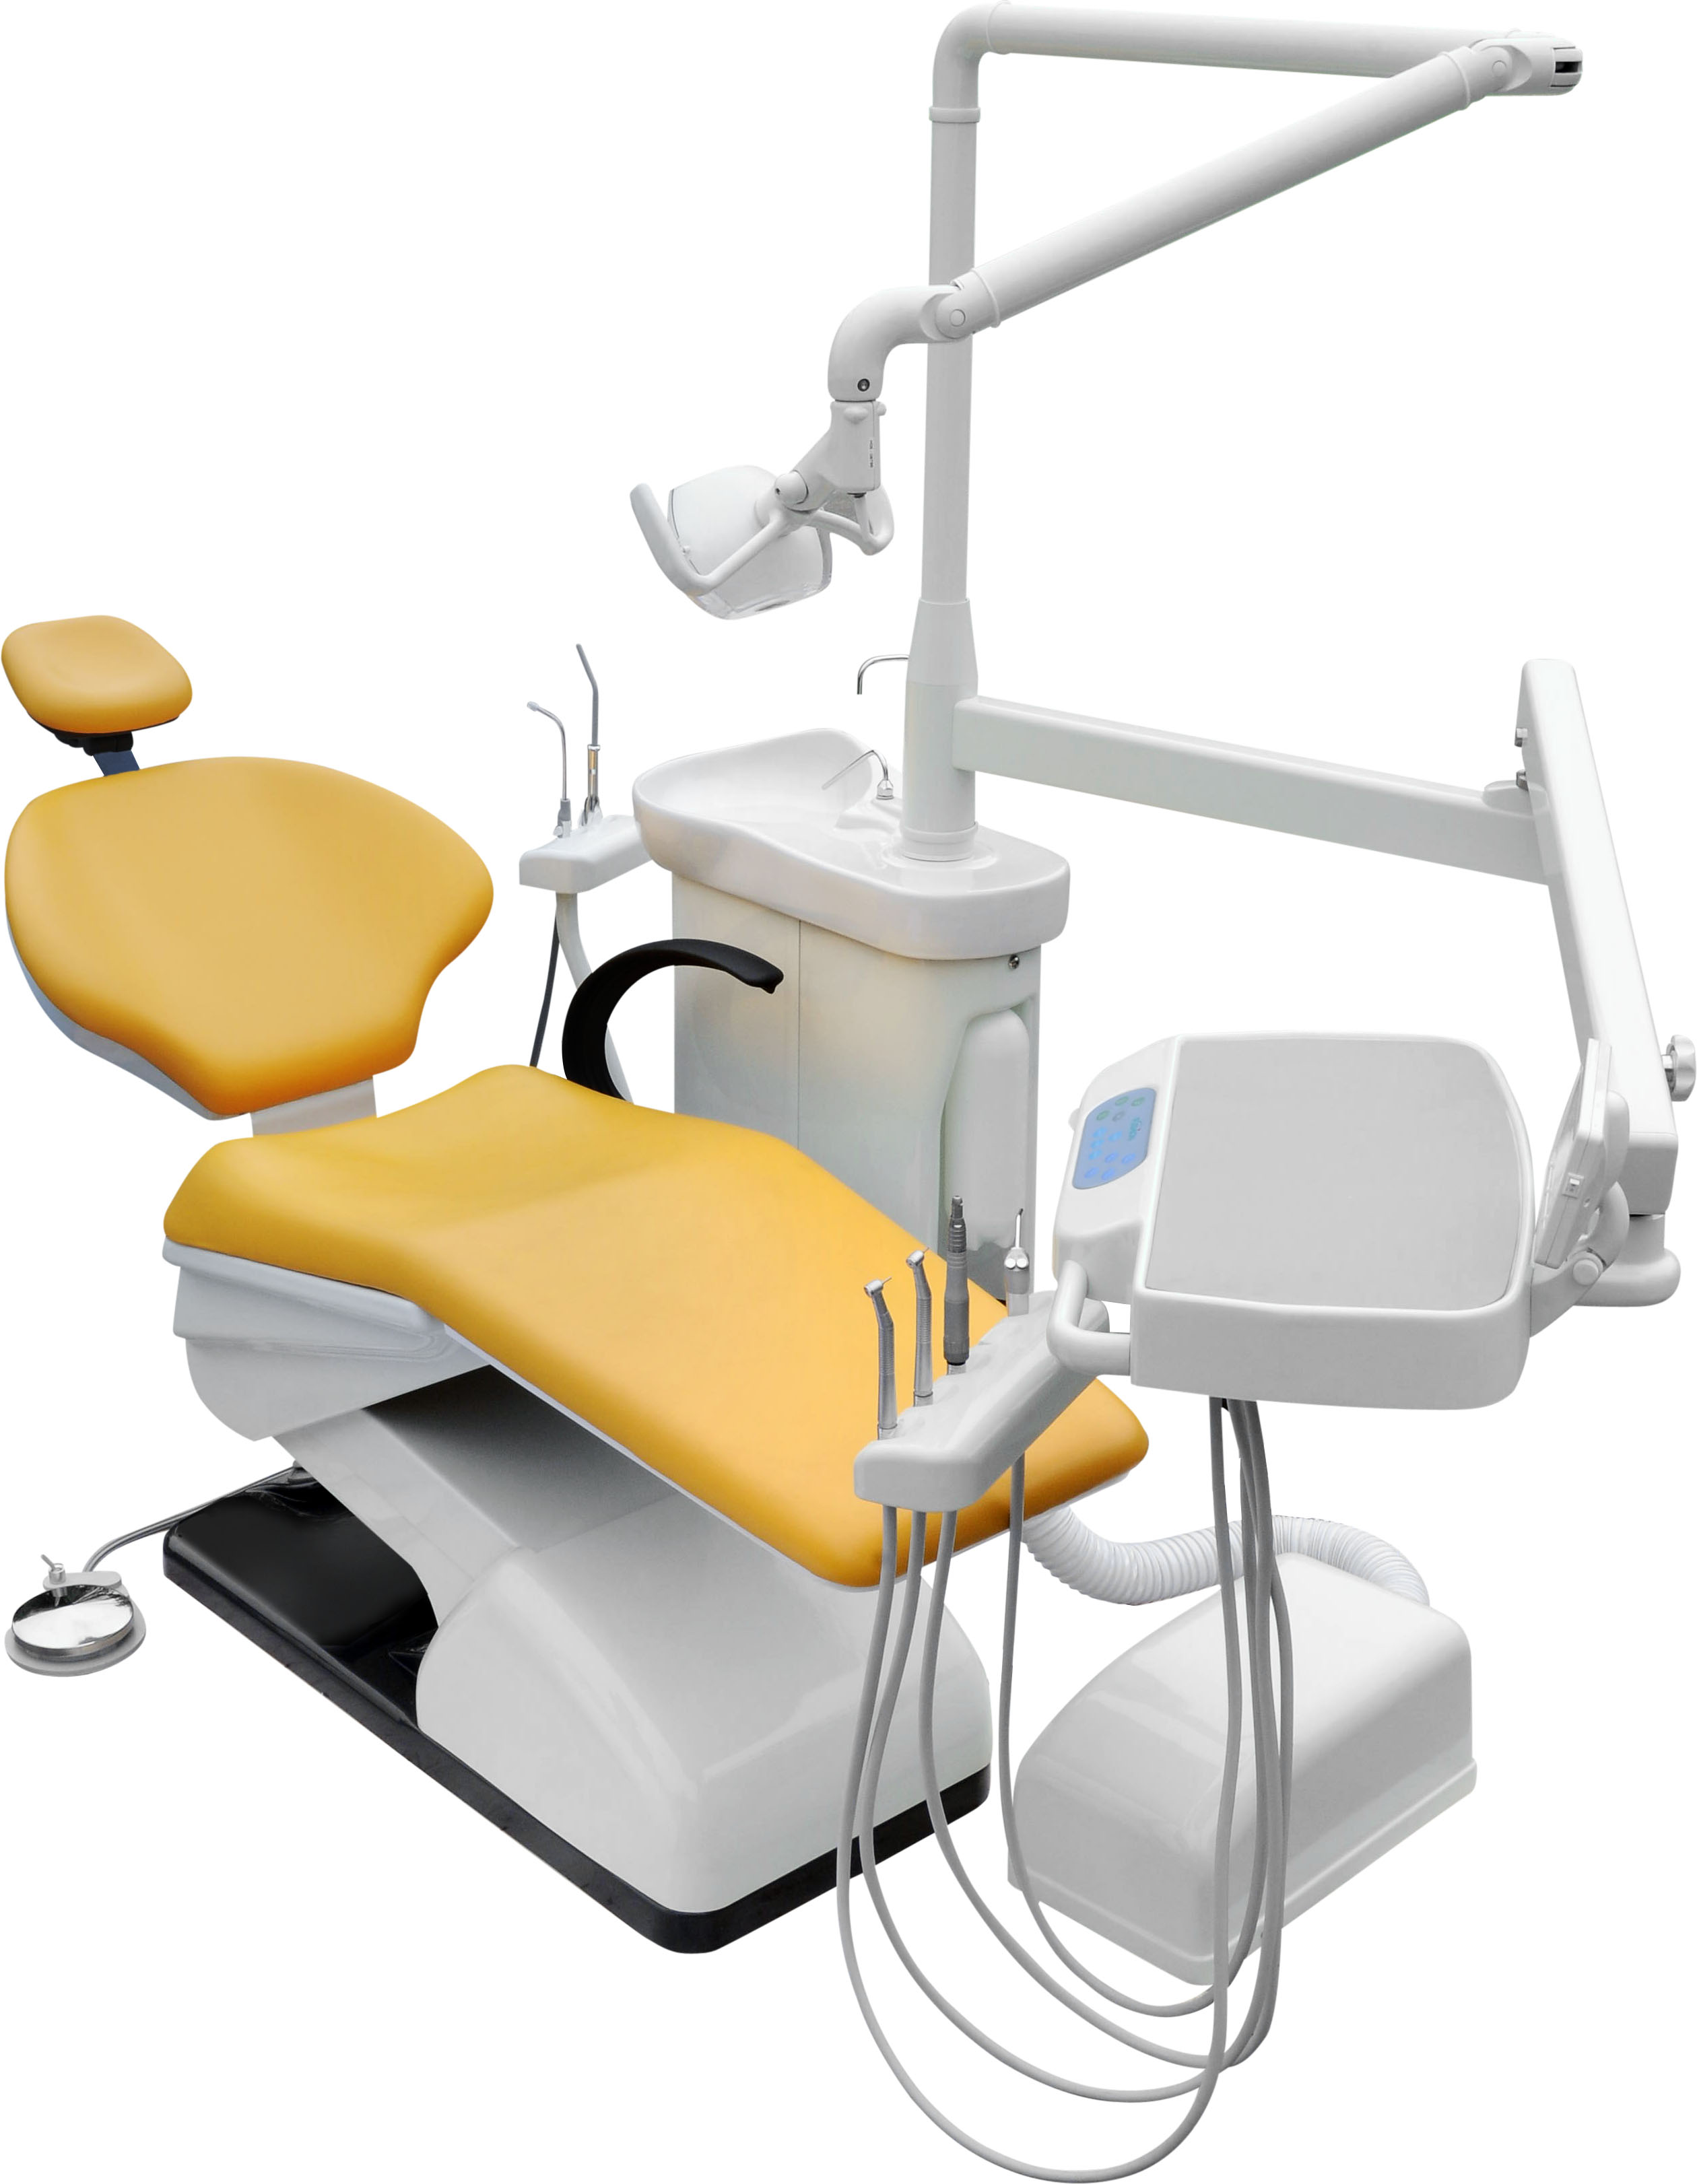 Used Dental Chairs Chair Glamorous Dental 82802 Png Images Pngio